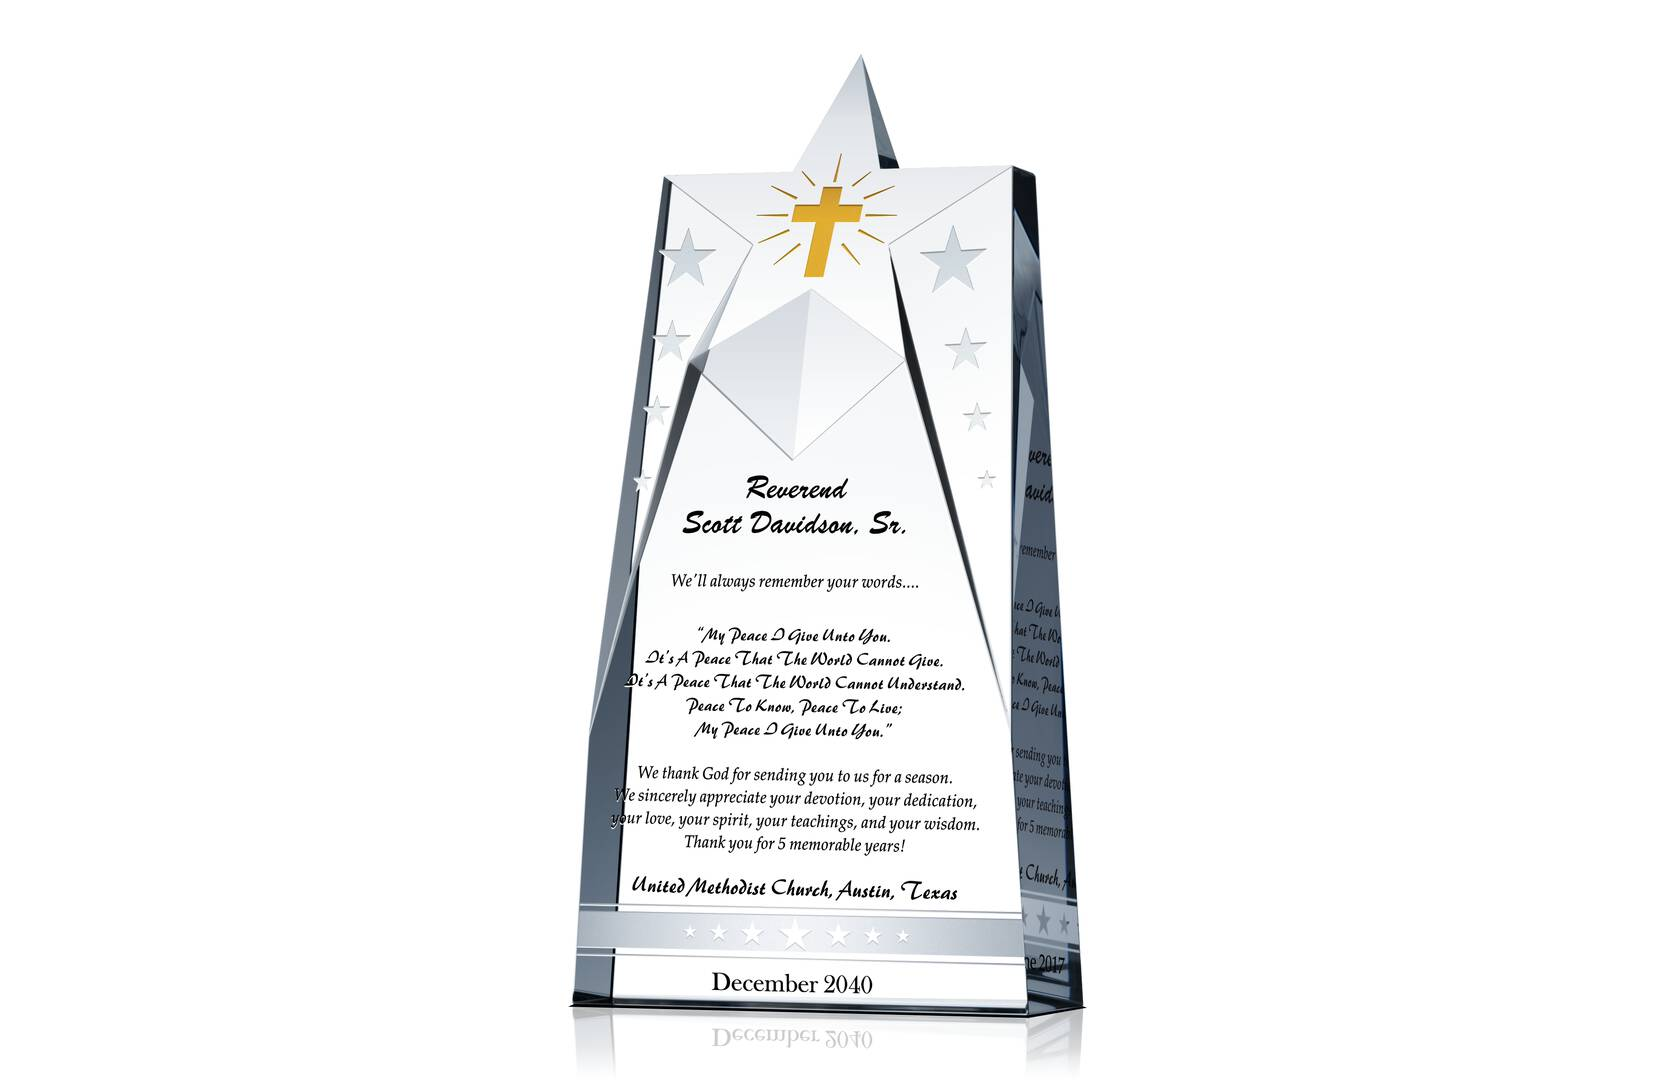 Star Pastor Appreciation Gift Plaques - Crystal Central